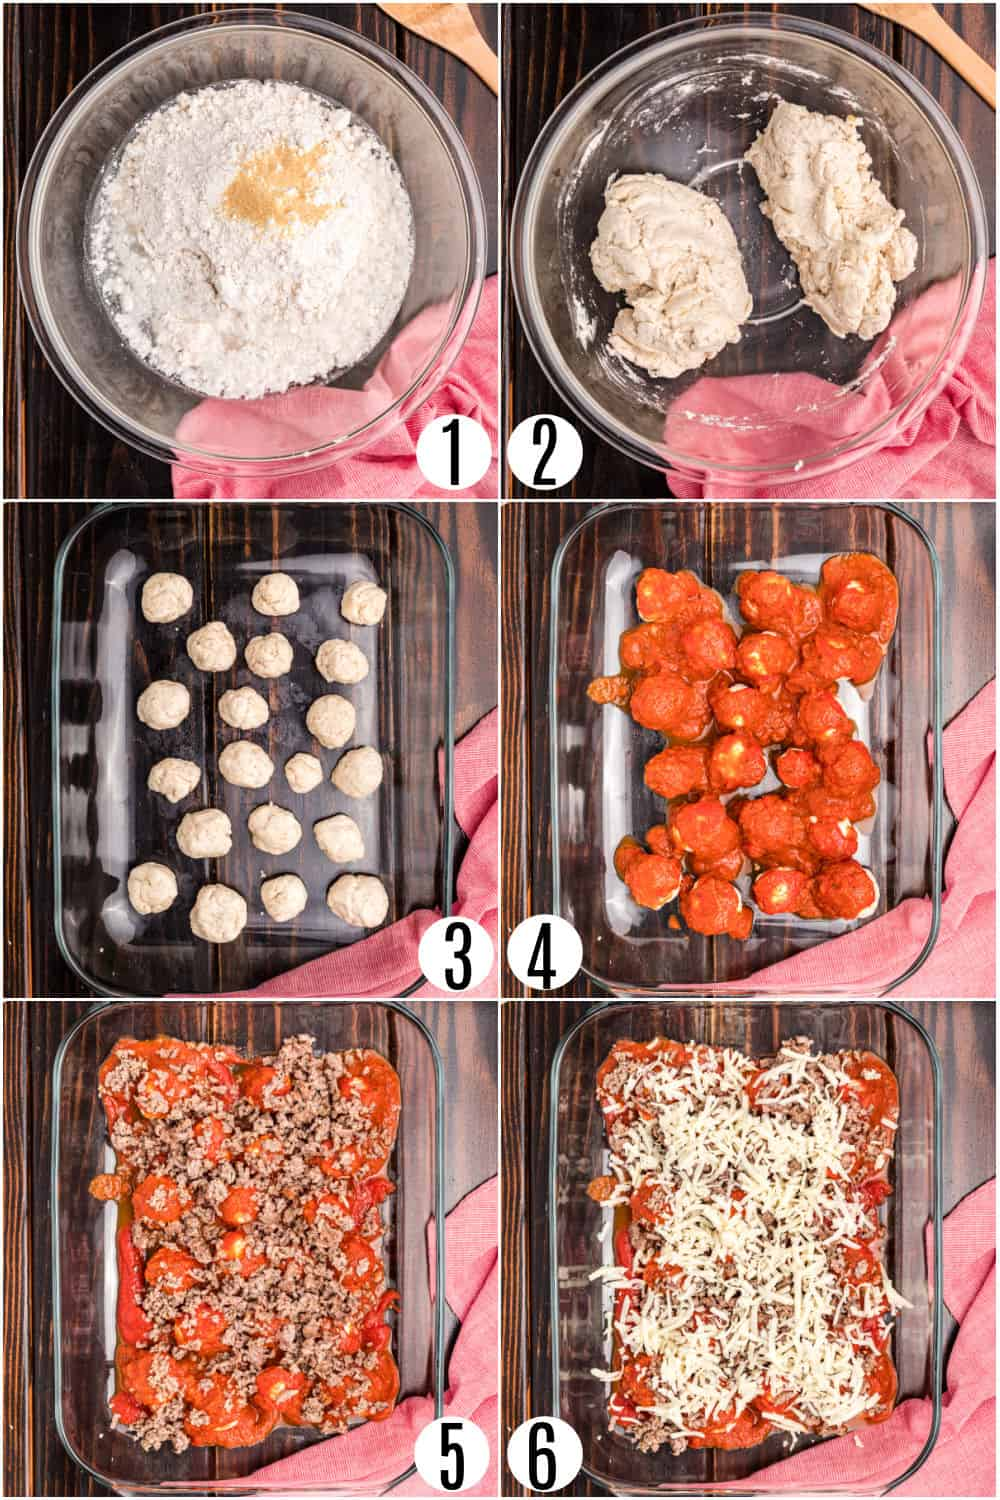 Step by step photos showing how to make bubble up pizza casserole.